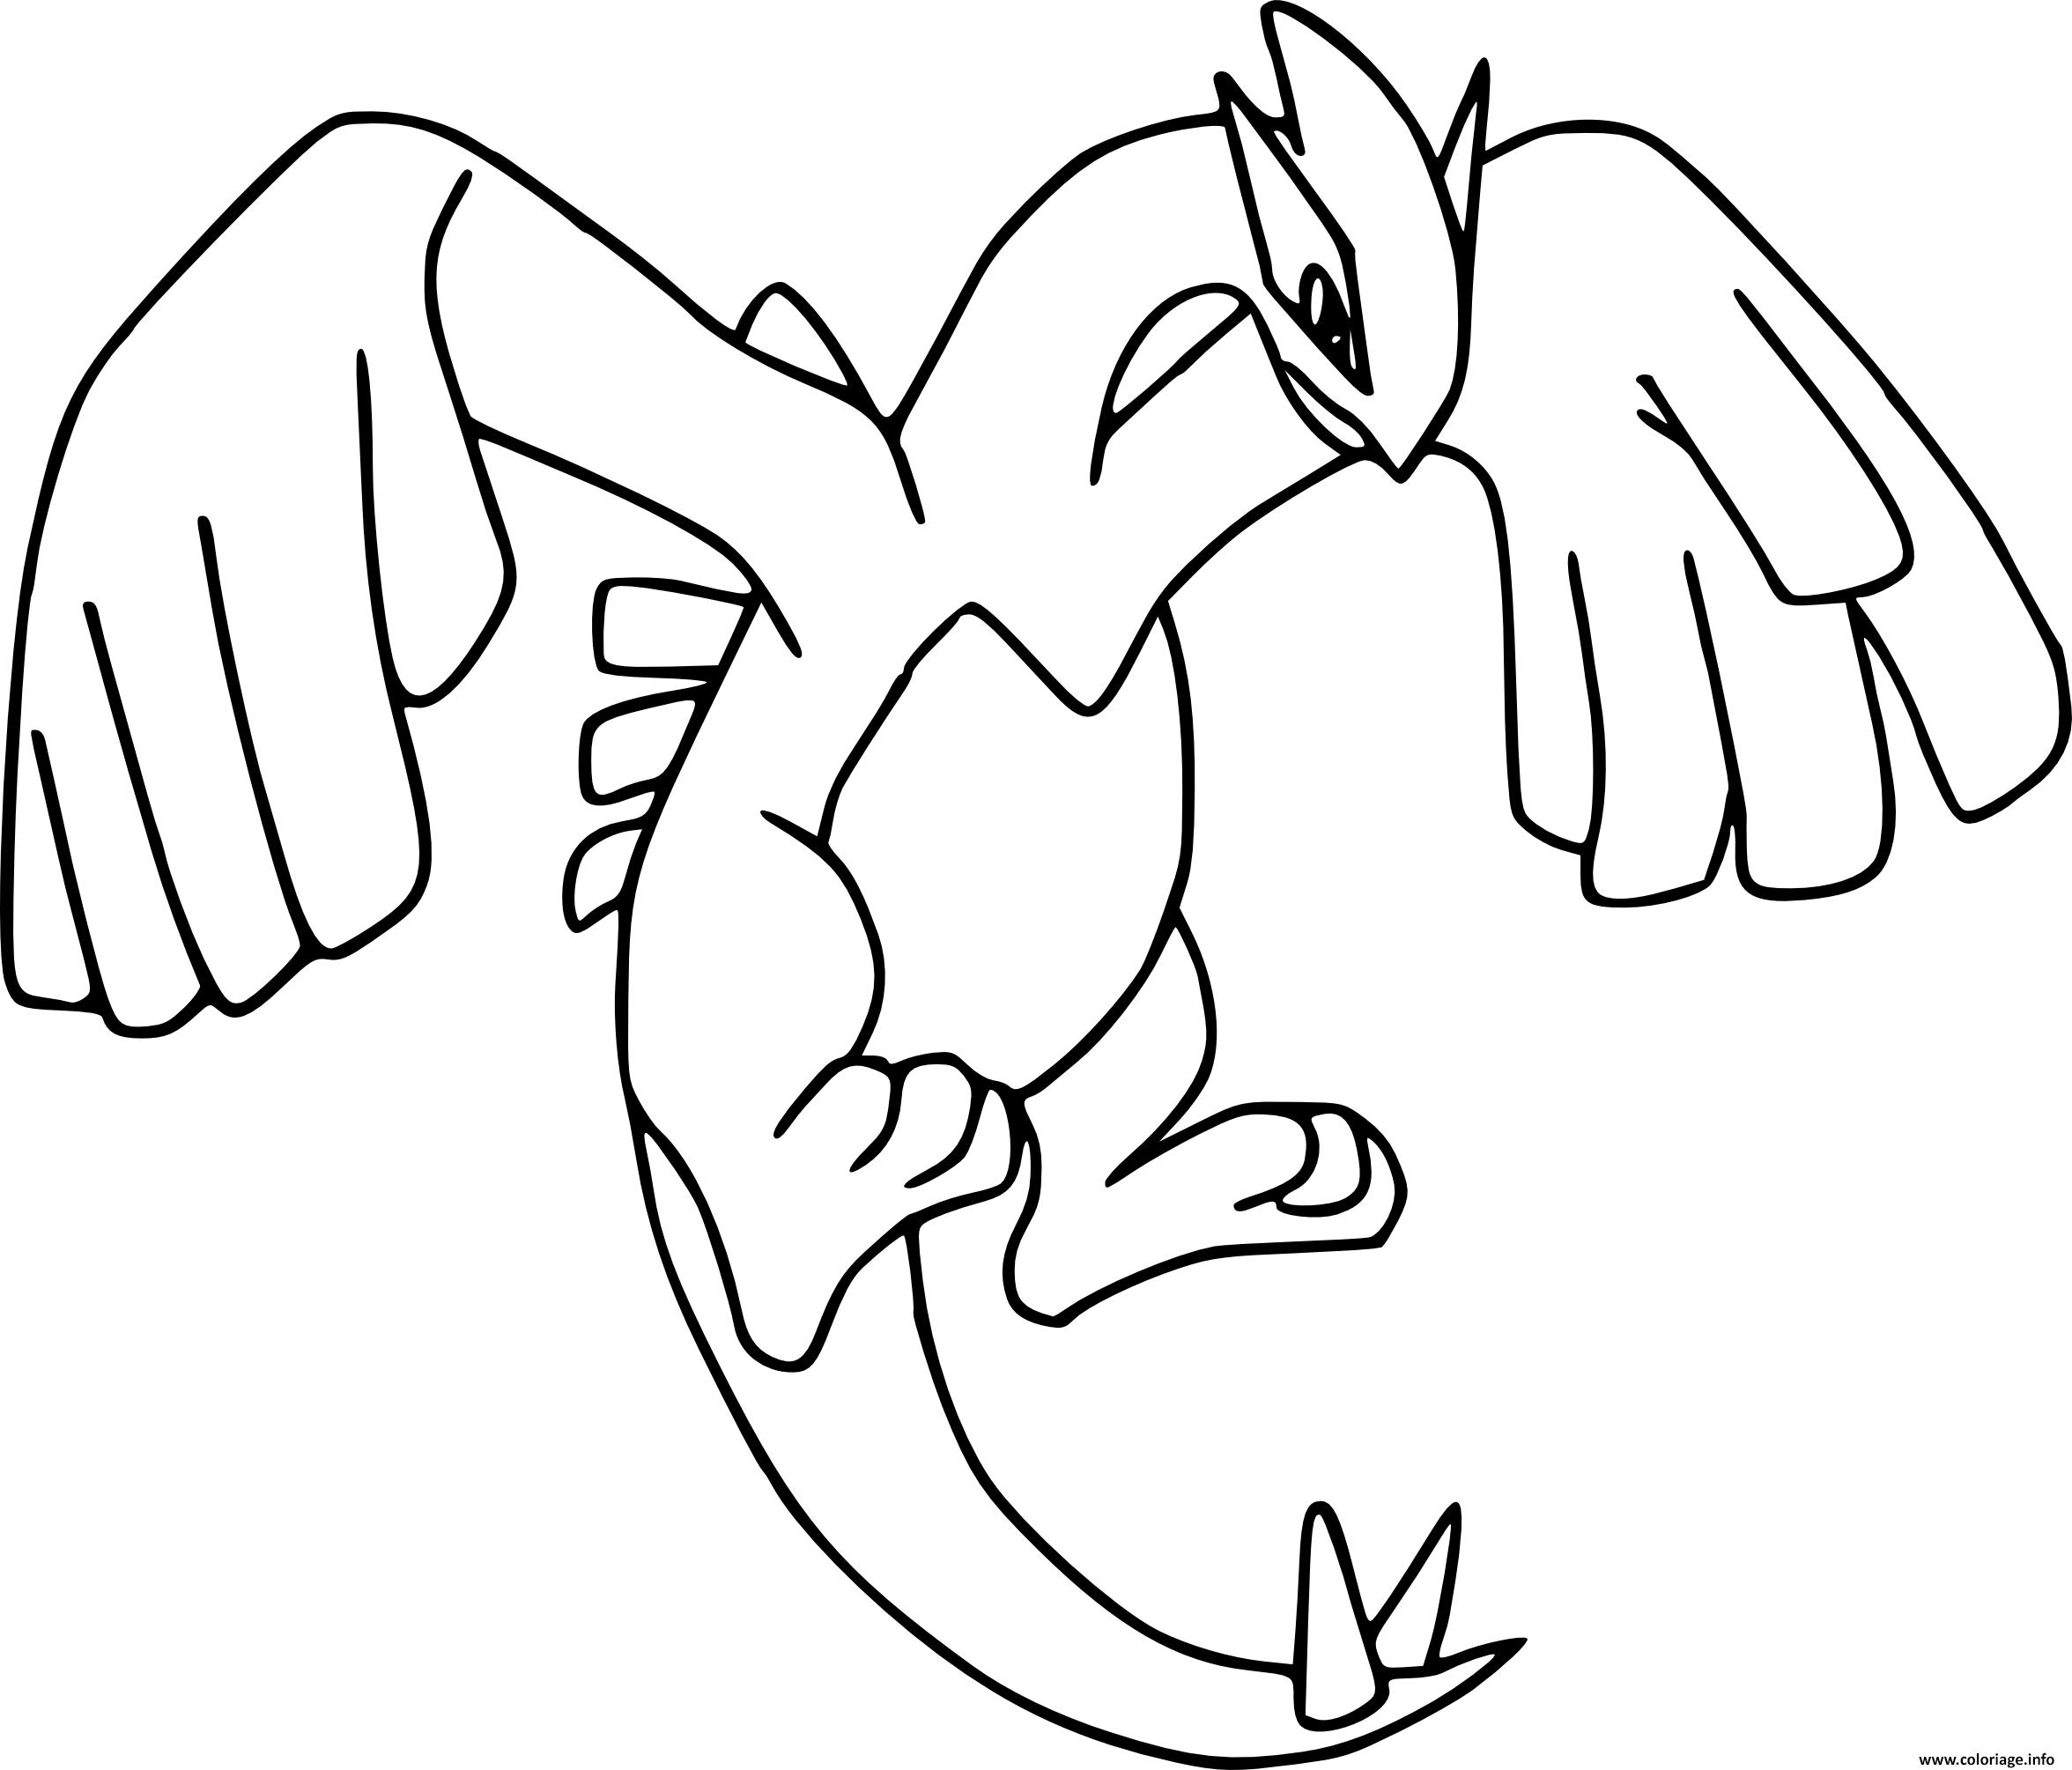 Coloriage pokemon legendaire lugia - Coloriage pokemon rayquaza ...